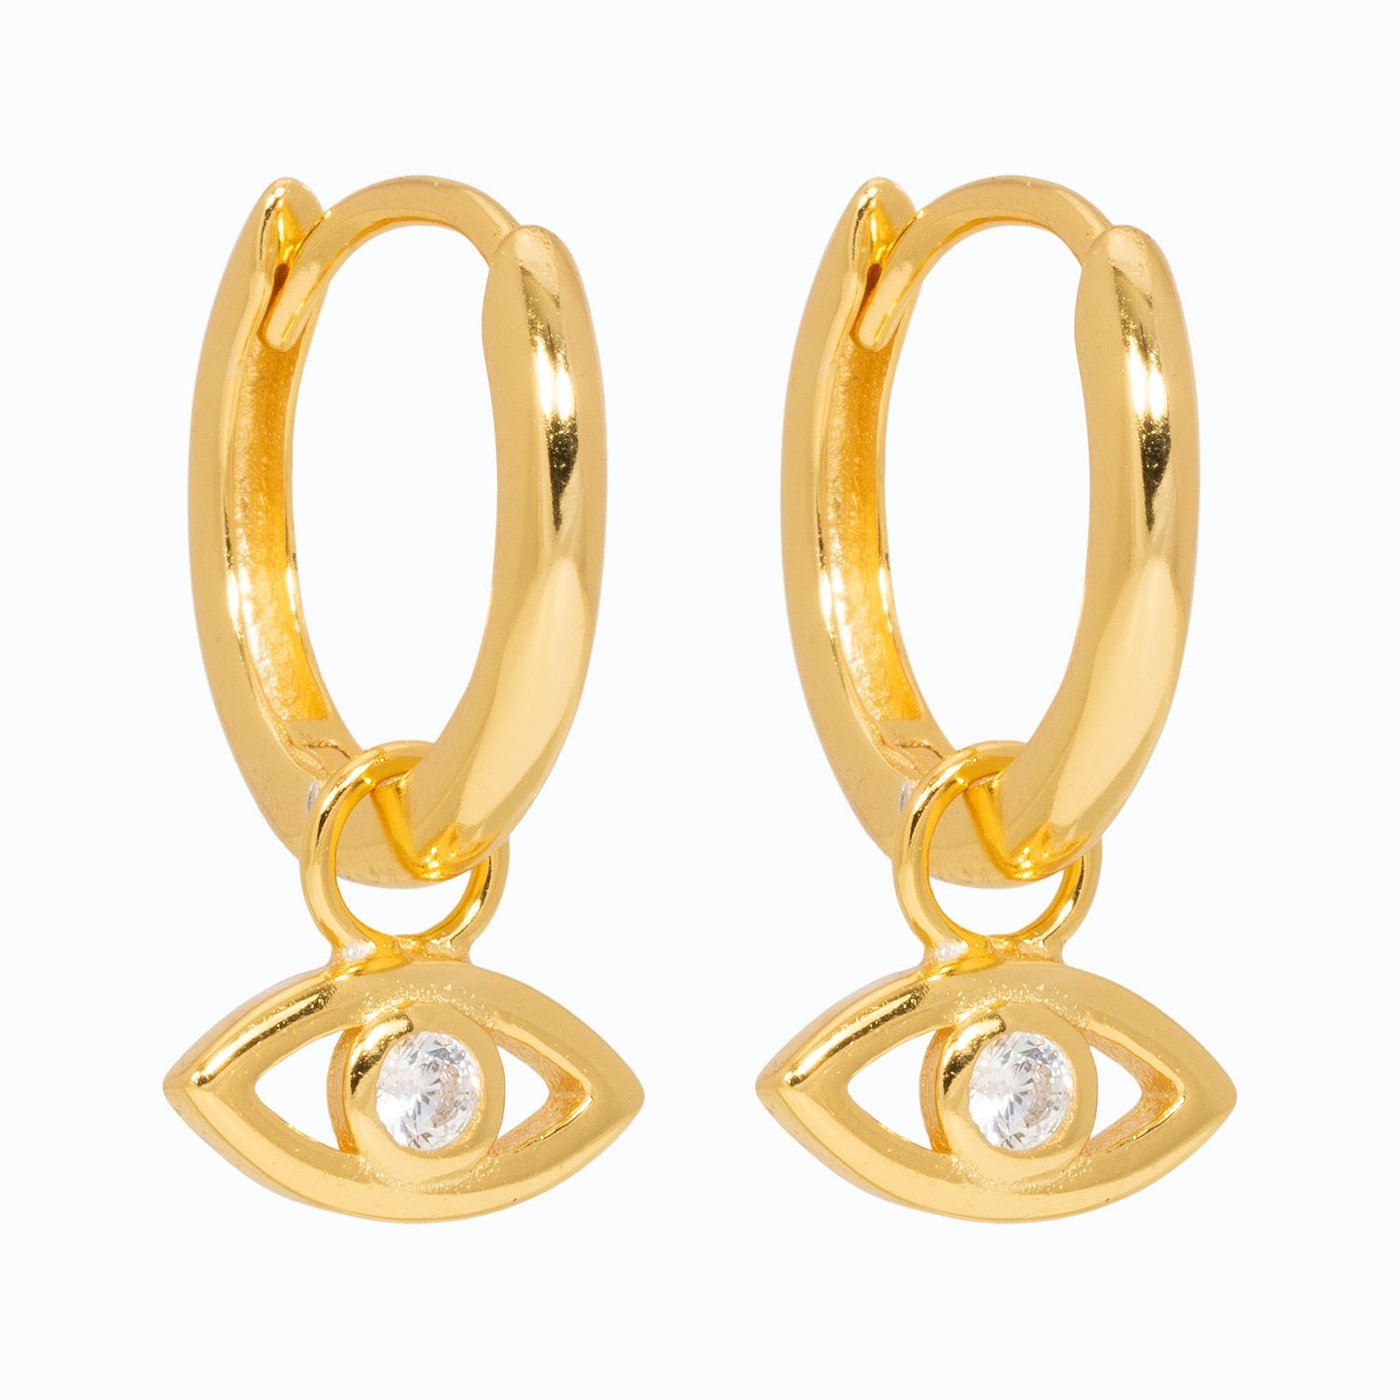 Lillys Amsterdam Gold Chico Huggy Hoop Earrings